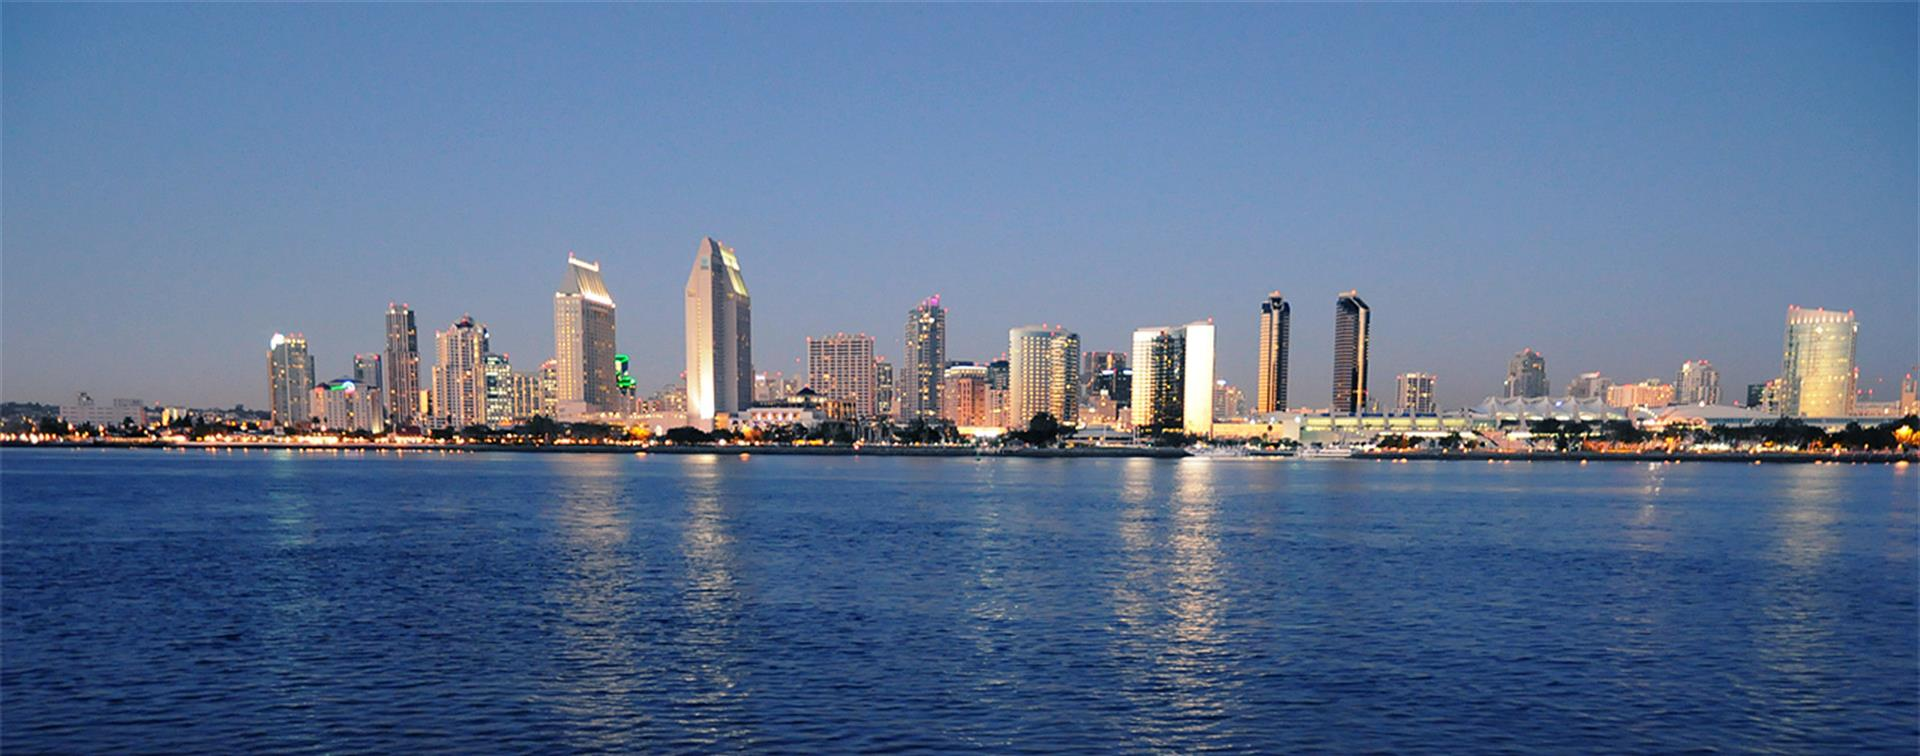 A picture of the San Diego skyline